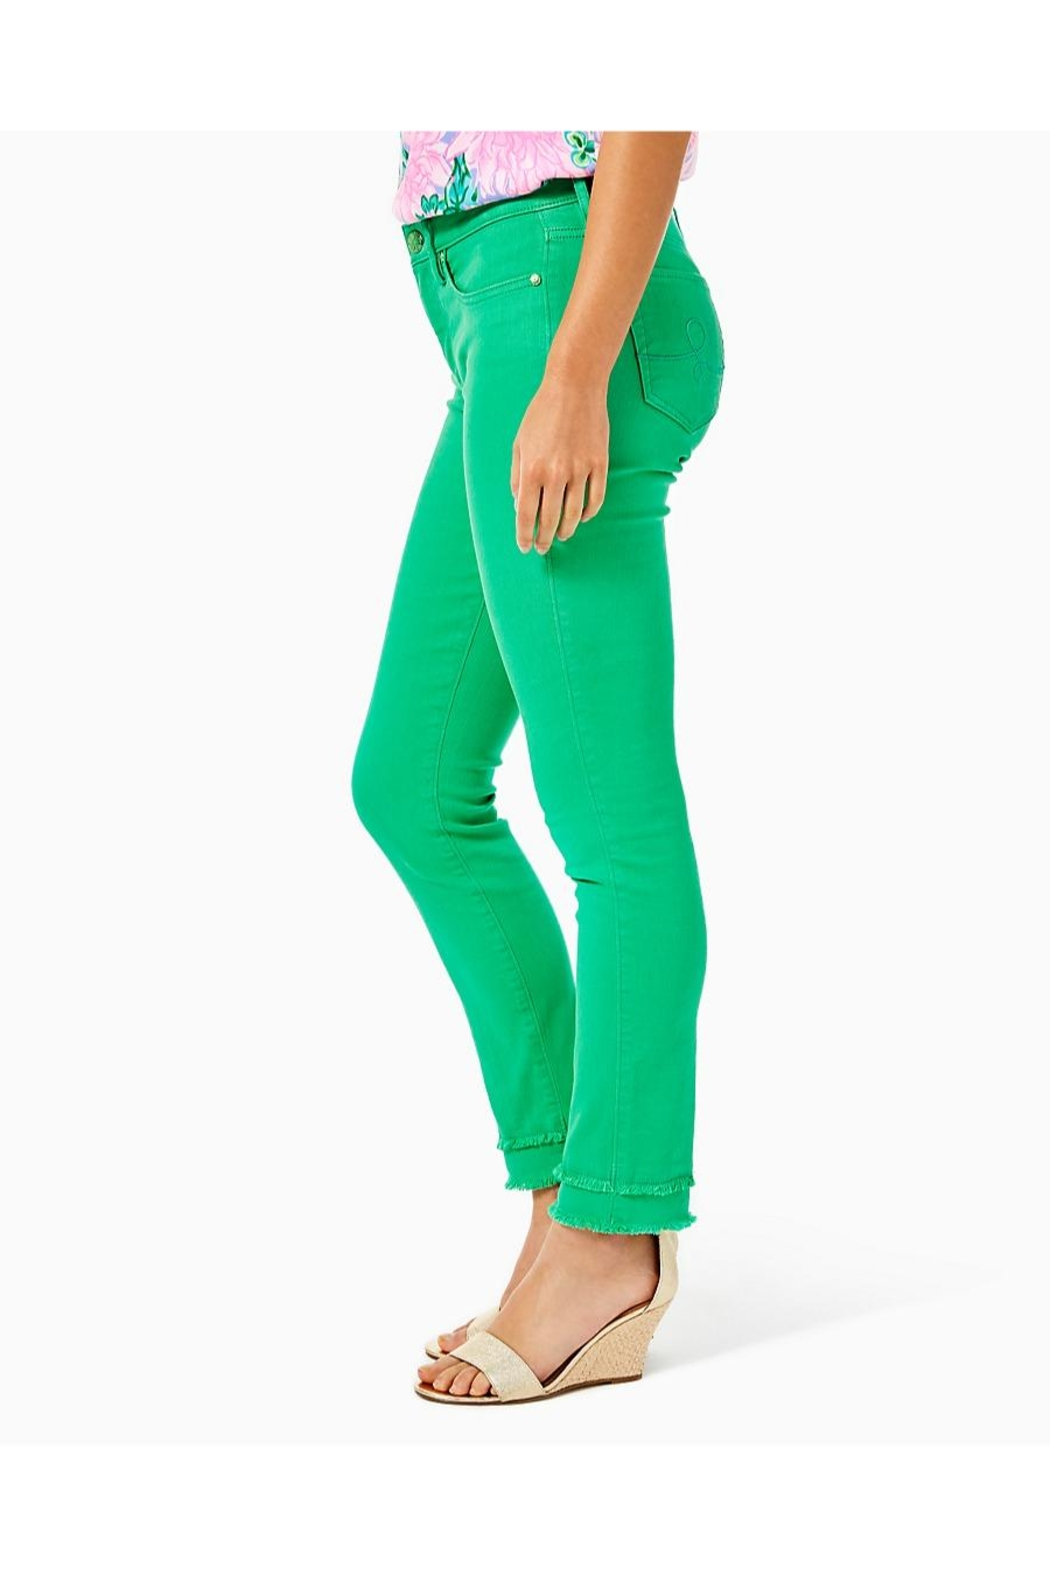 Lilly Pulitzer South Ocean Skinny-Jean - Side Cropped Image